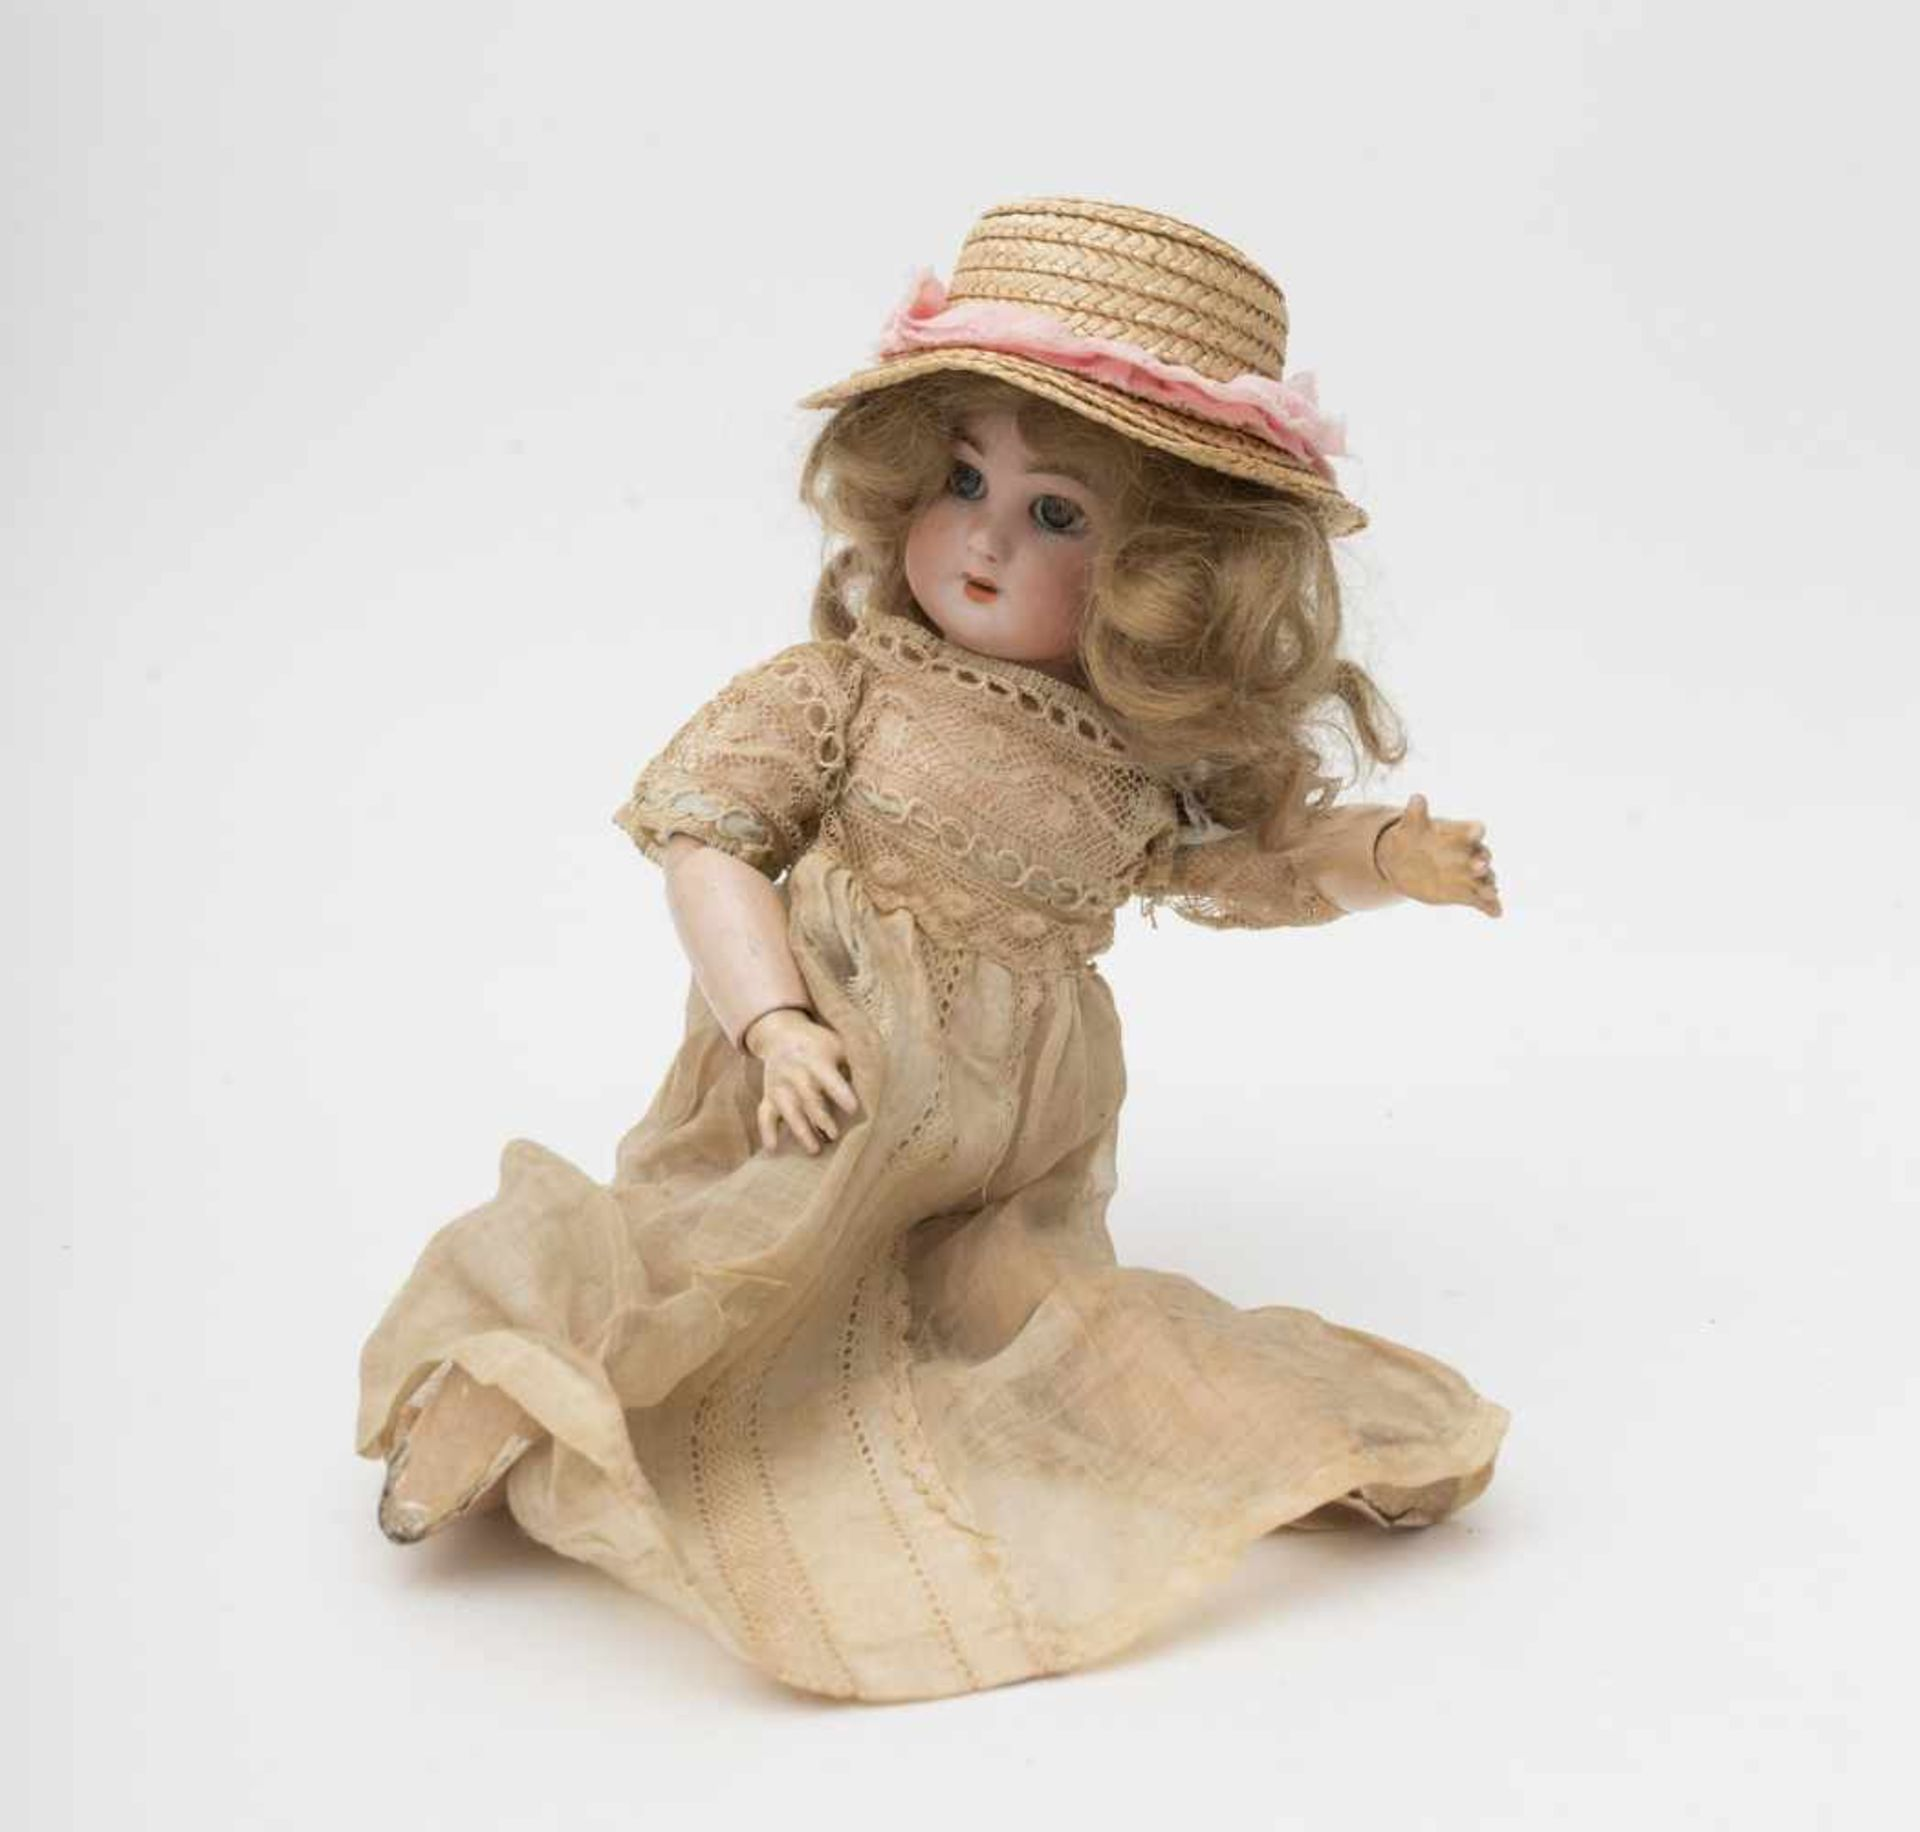 """SFBJ doll With biscuit head, open mouth, branded """"DEP"""", size 2, articulated SFBJ body, H=30cm."""